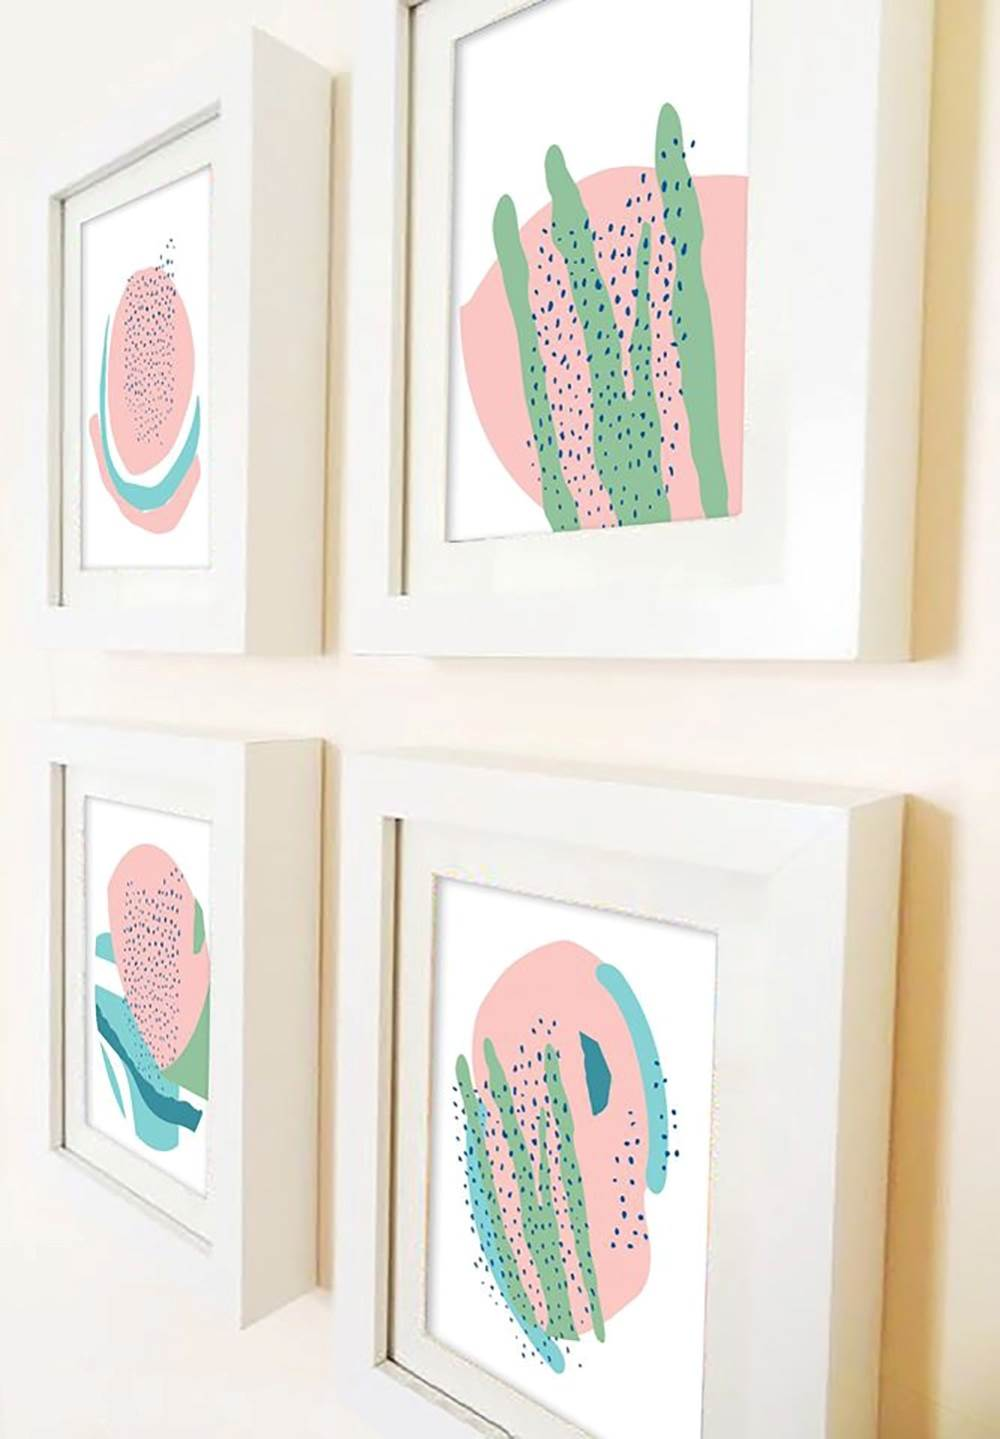 Coleção Cactus, original Abstract Paper Drawing and Illustration by Maria João Faustino